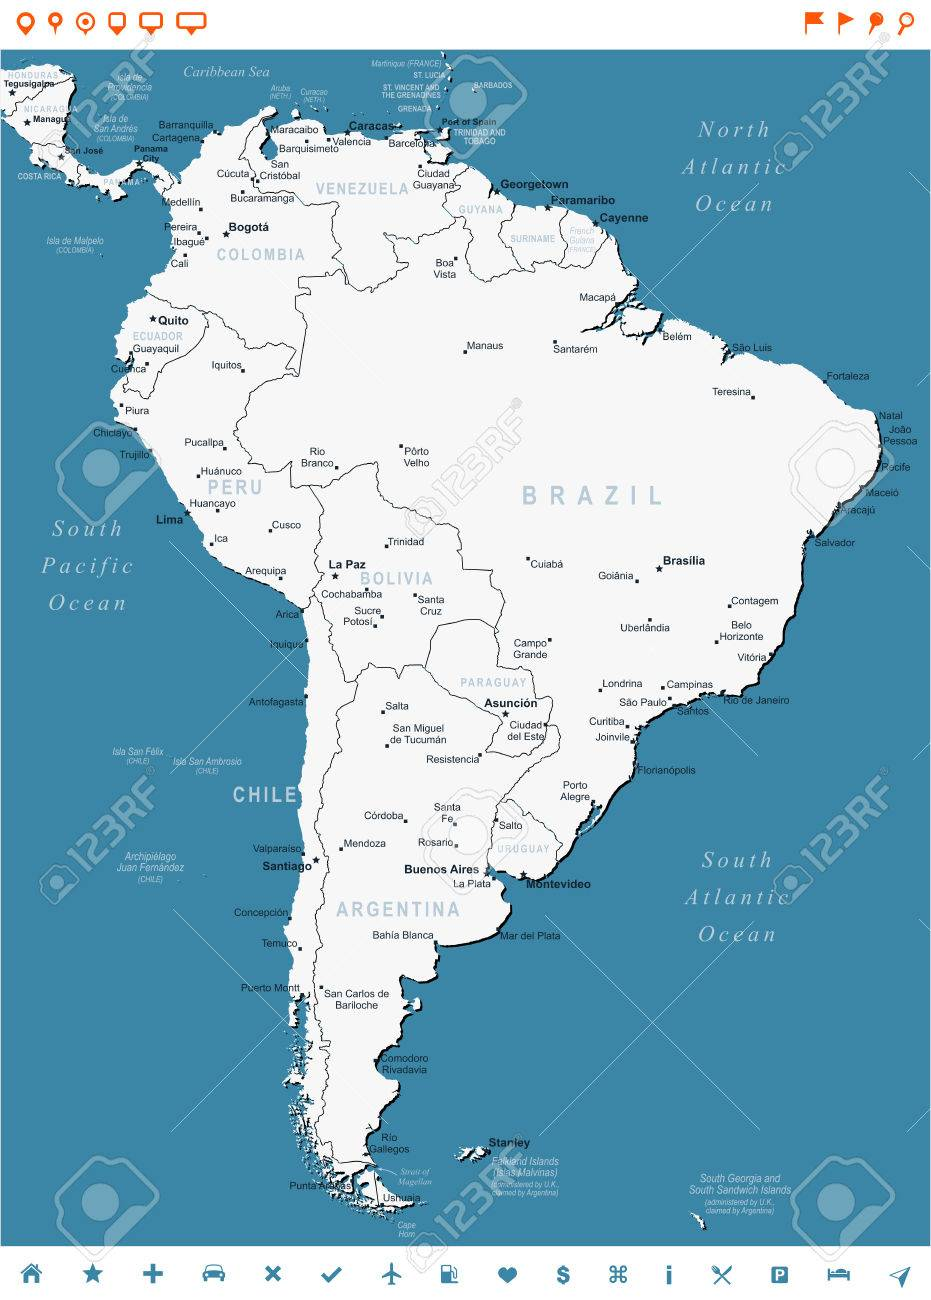 Costa Rica South America Map.South America Map Highly Detailed Vector Illustration Image